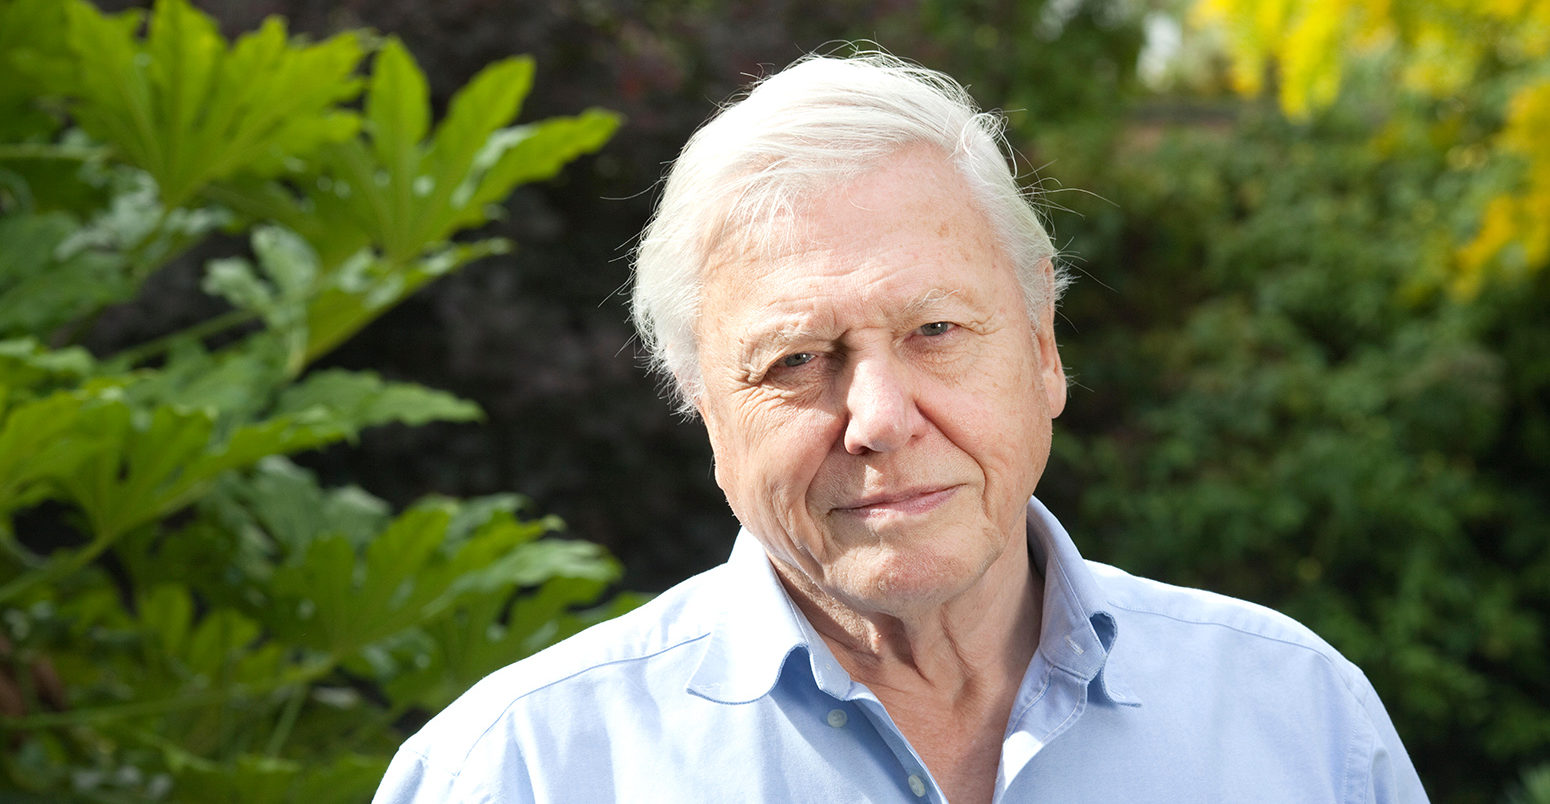 Sir David Attenborough, English broadcaster and naturalist, at his home in Richmond, Borough of Richmond upon Thames, England UK